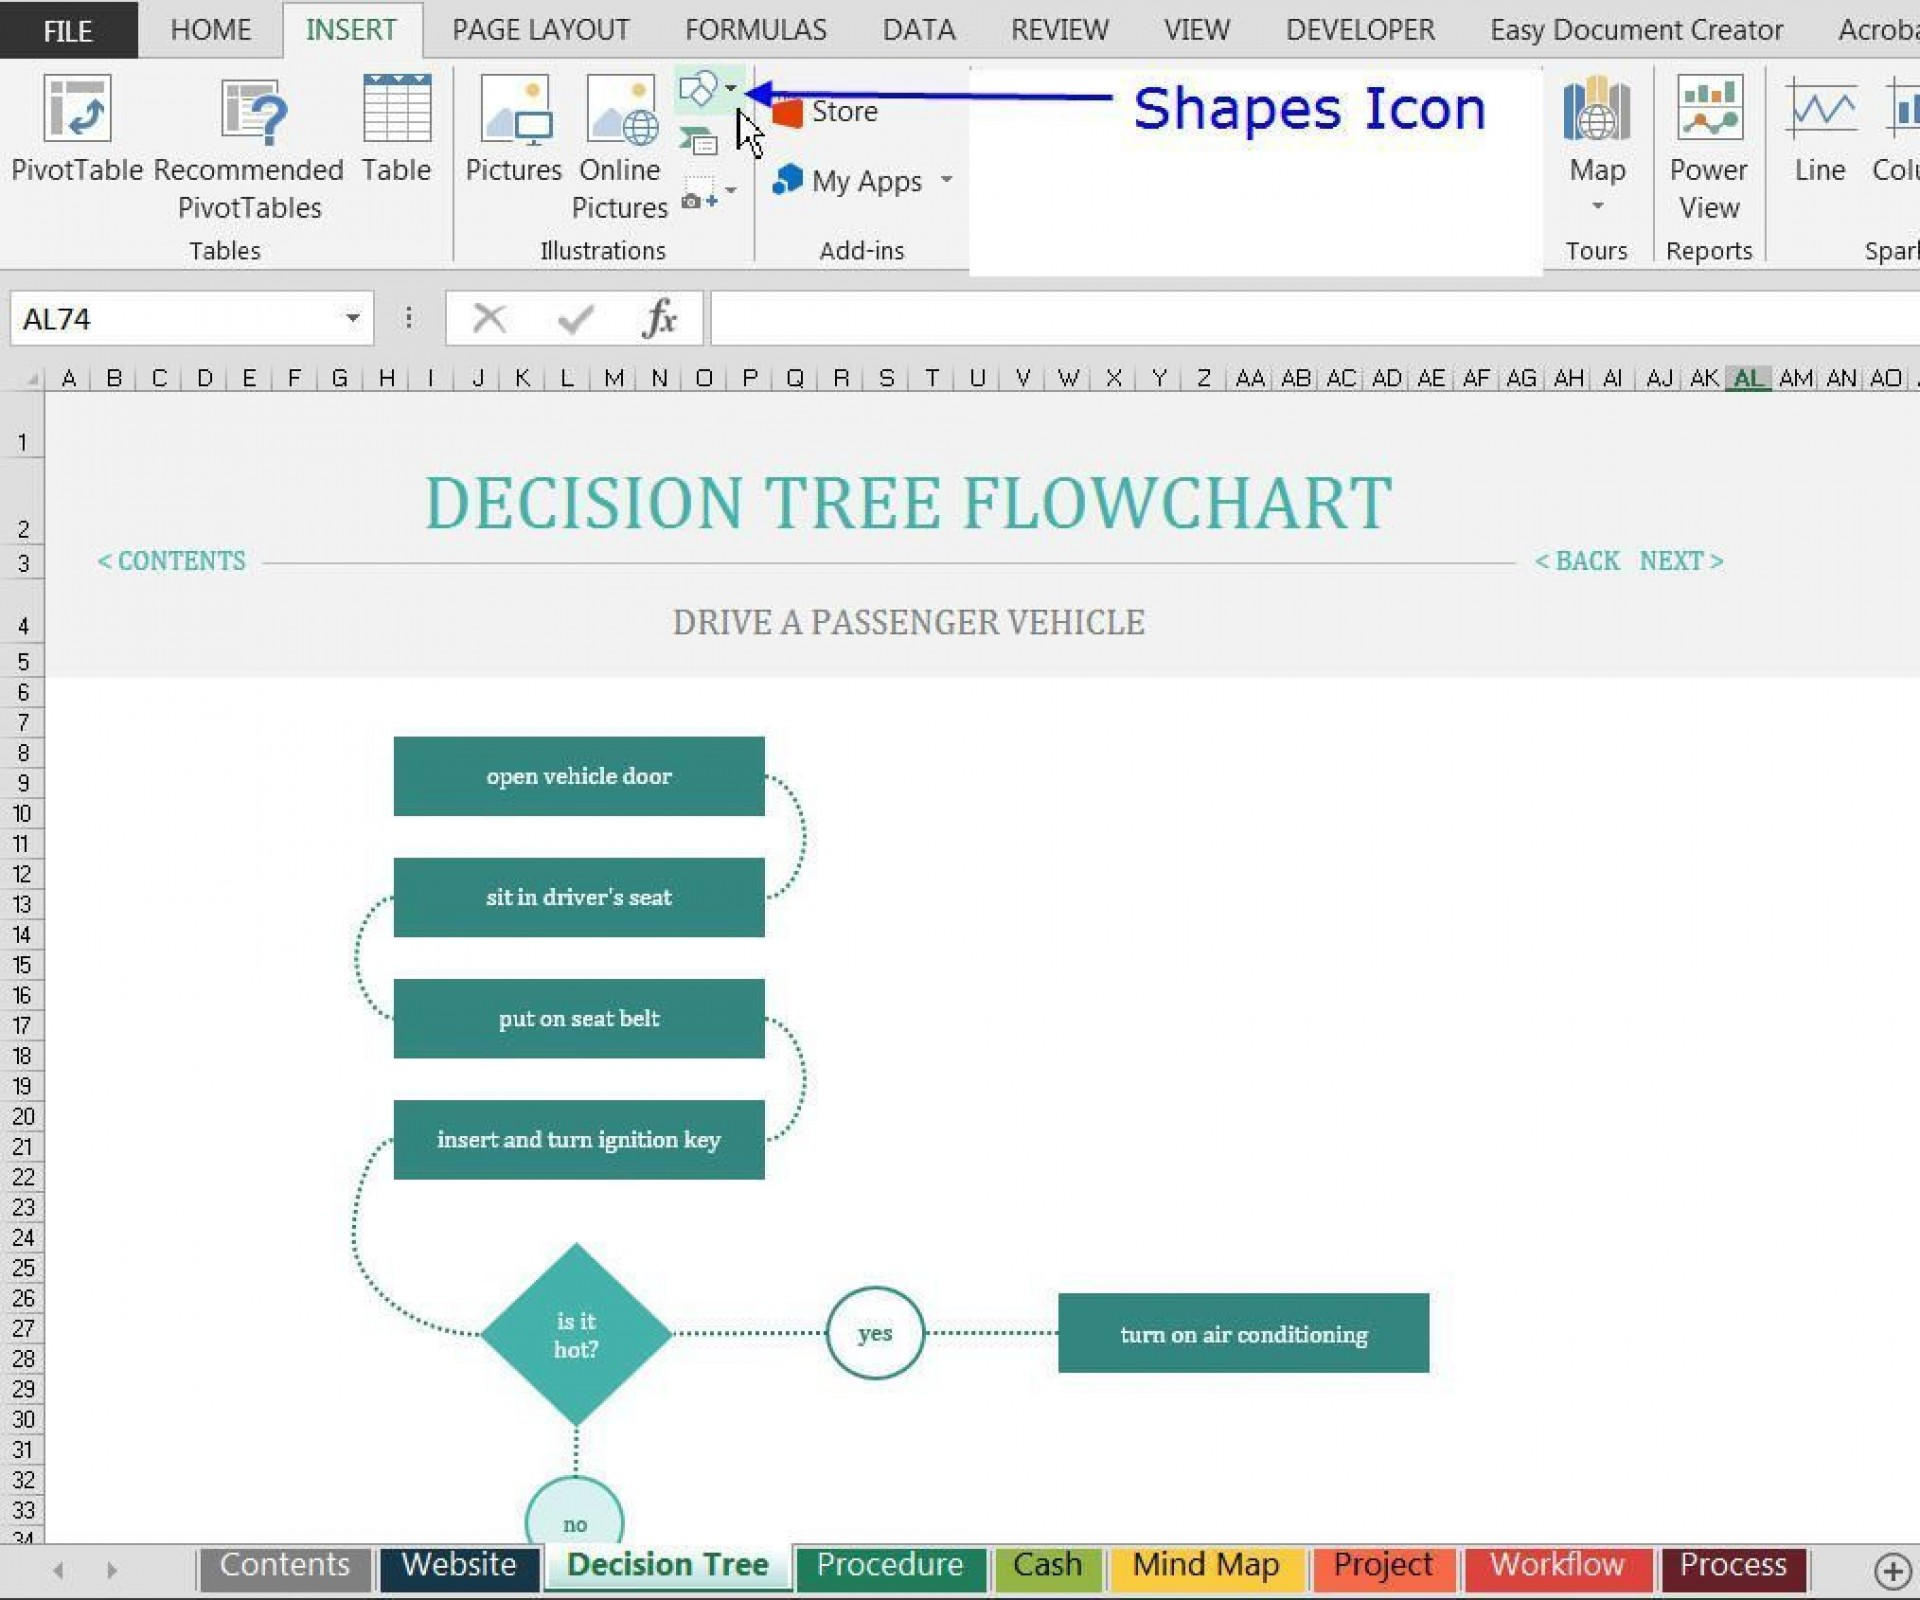 002 Marvelou Flow Chart Template Excel Free Inspiration  Blank For Download1920